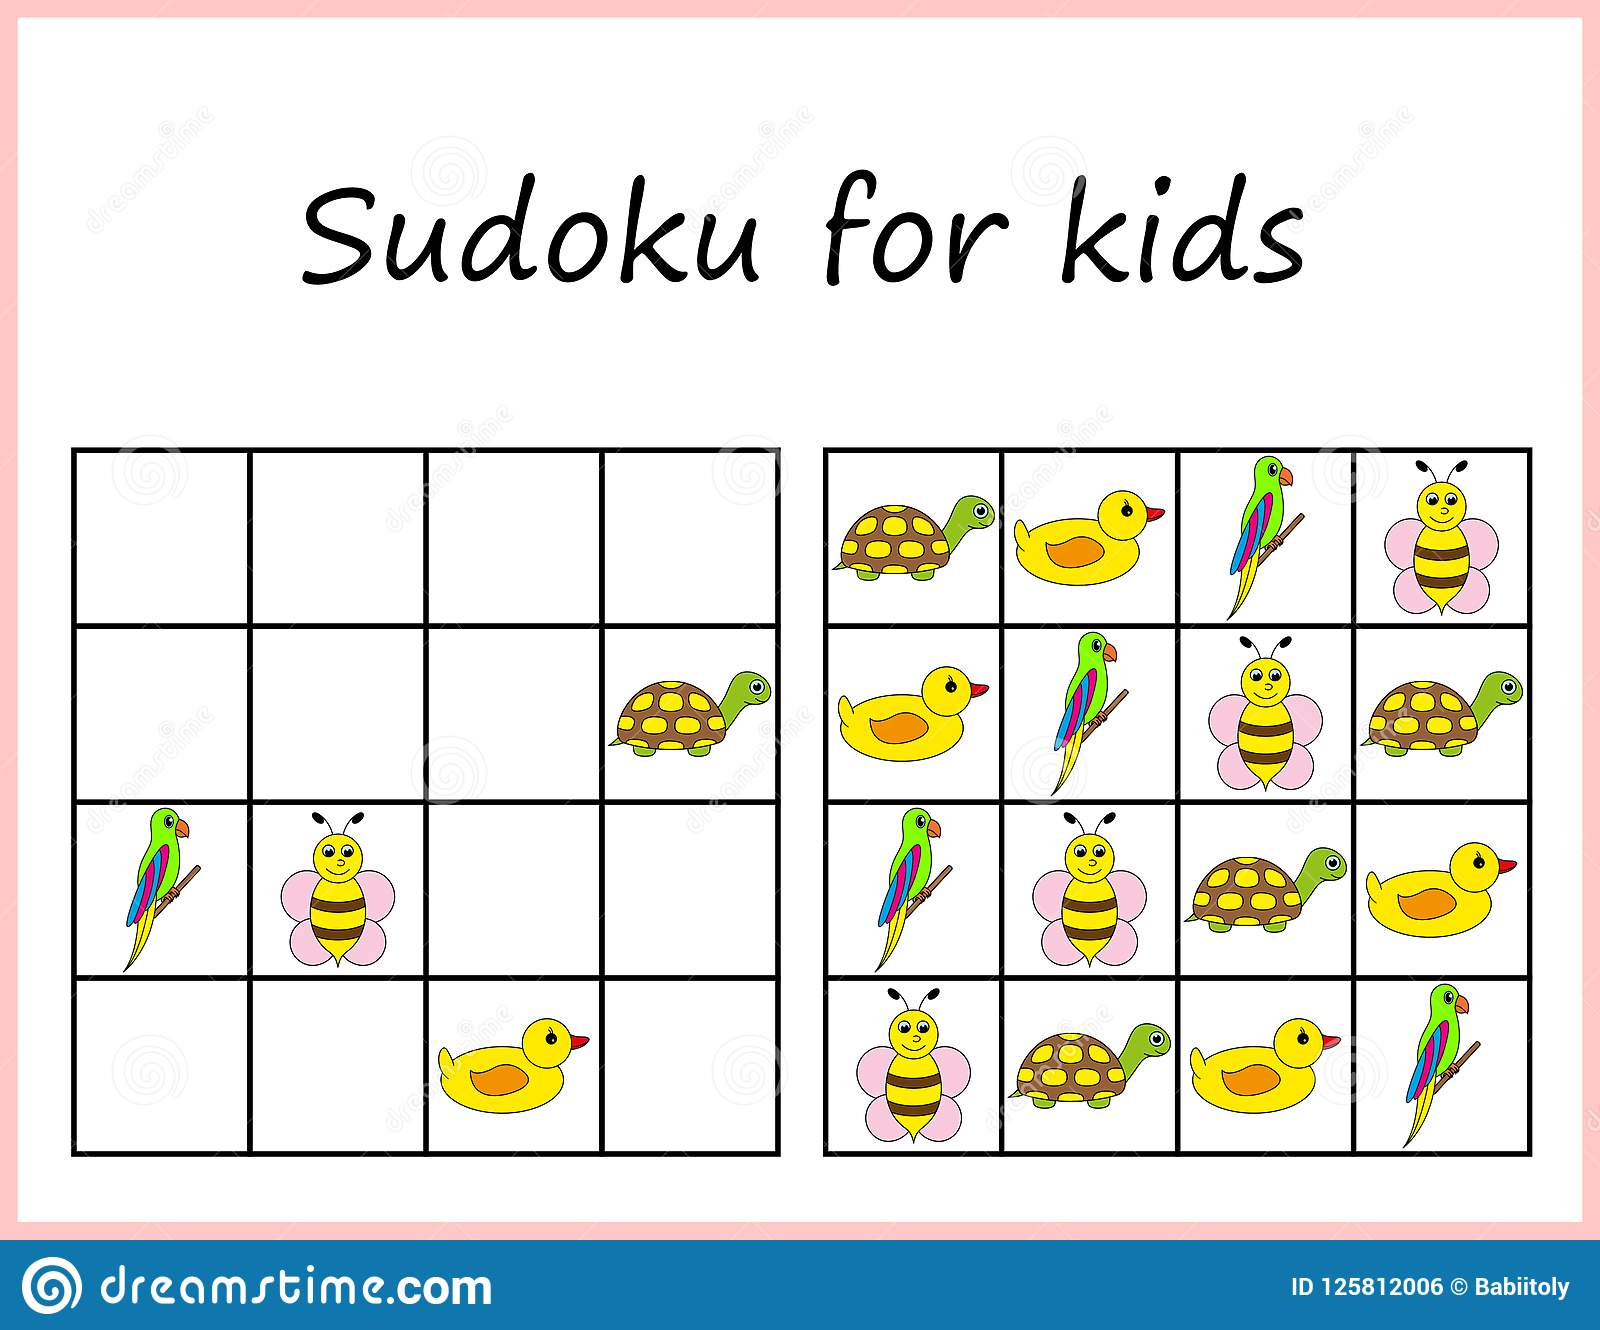 Sudoku For Kids Game For Preschool Kids Training Logic